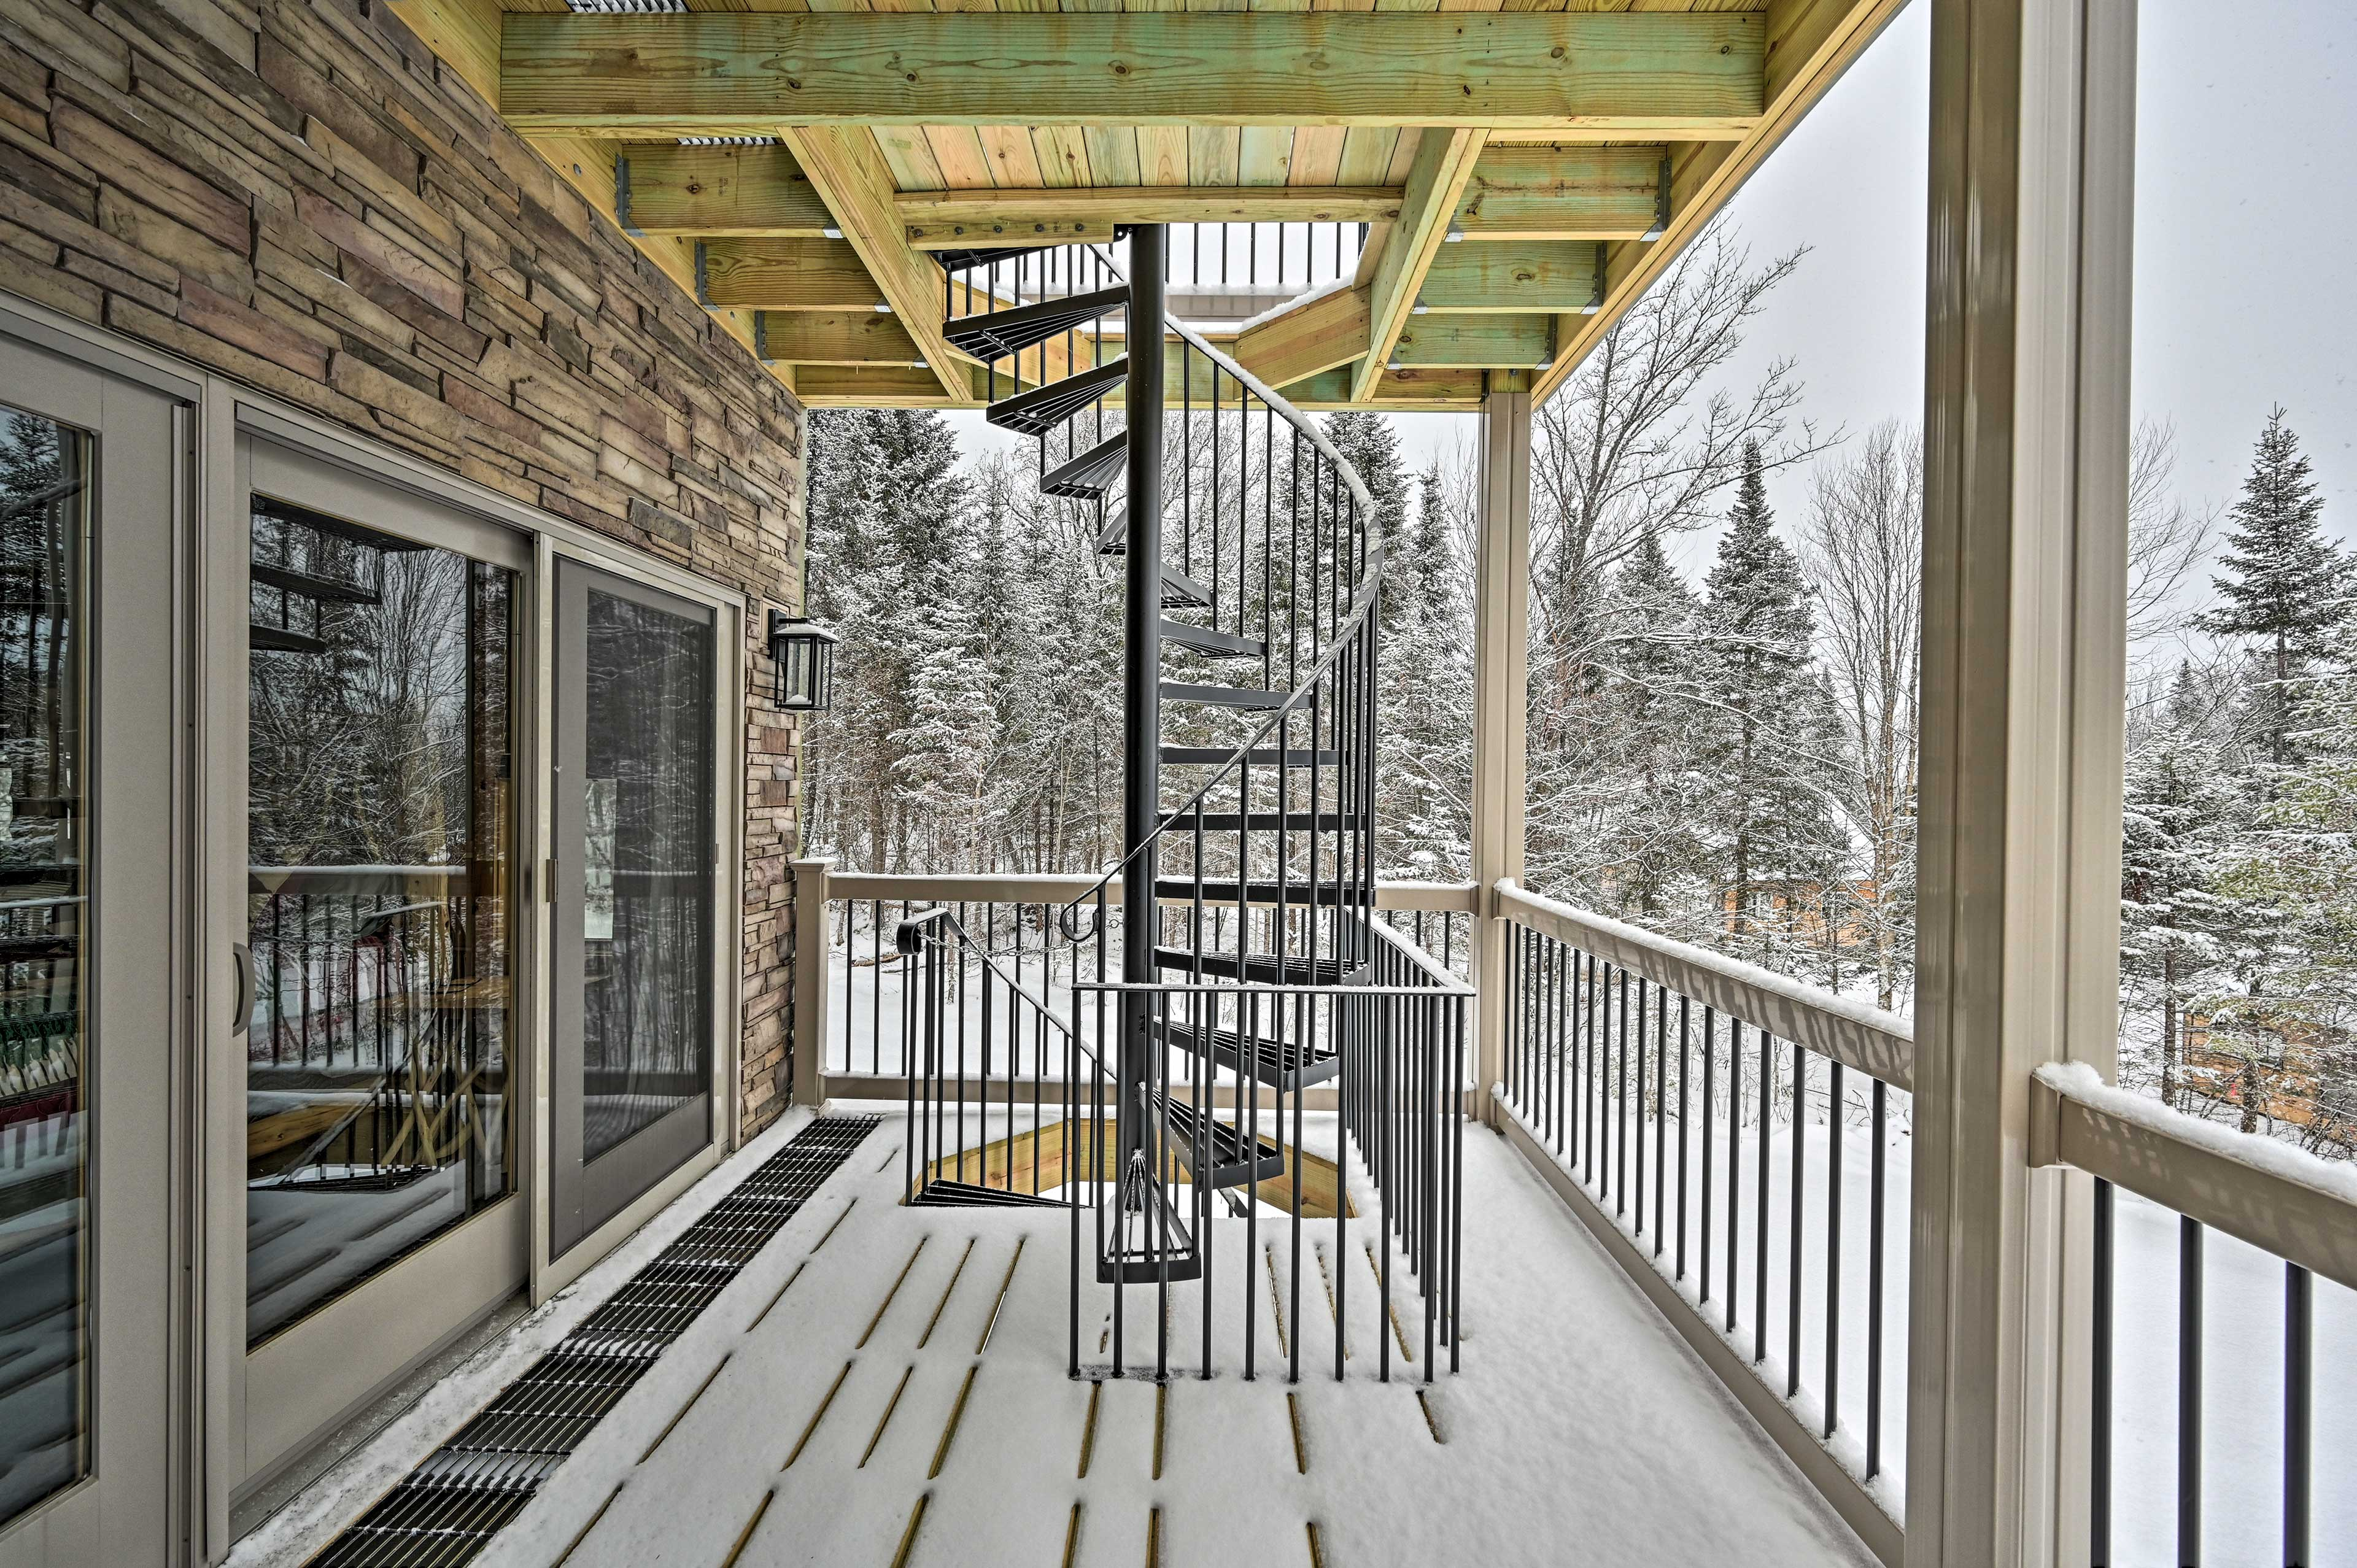 Go up or down the spiral staircase that accesses the 2 decks and patio.